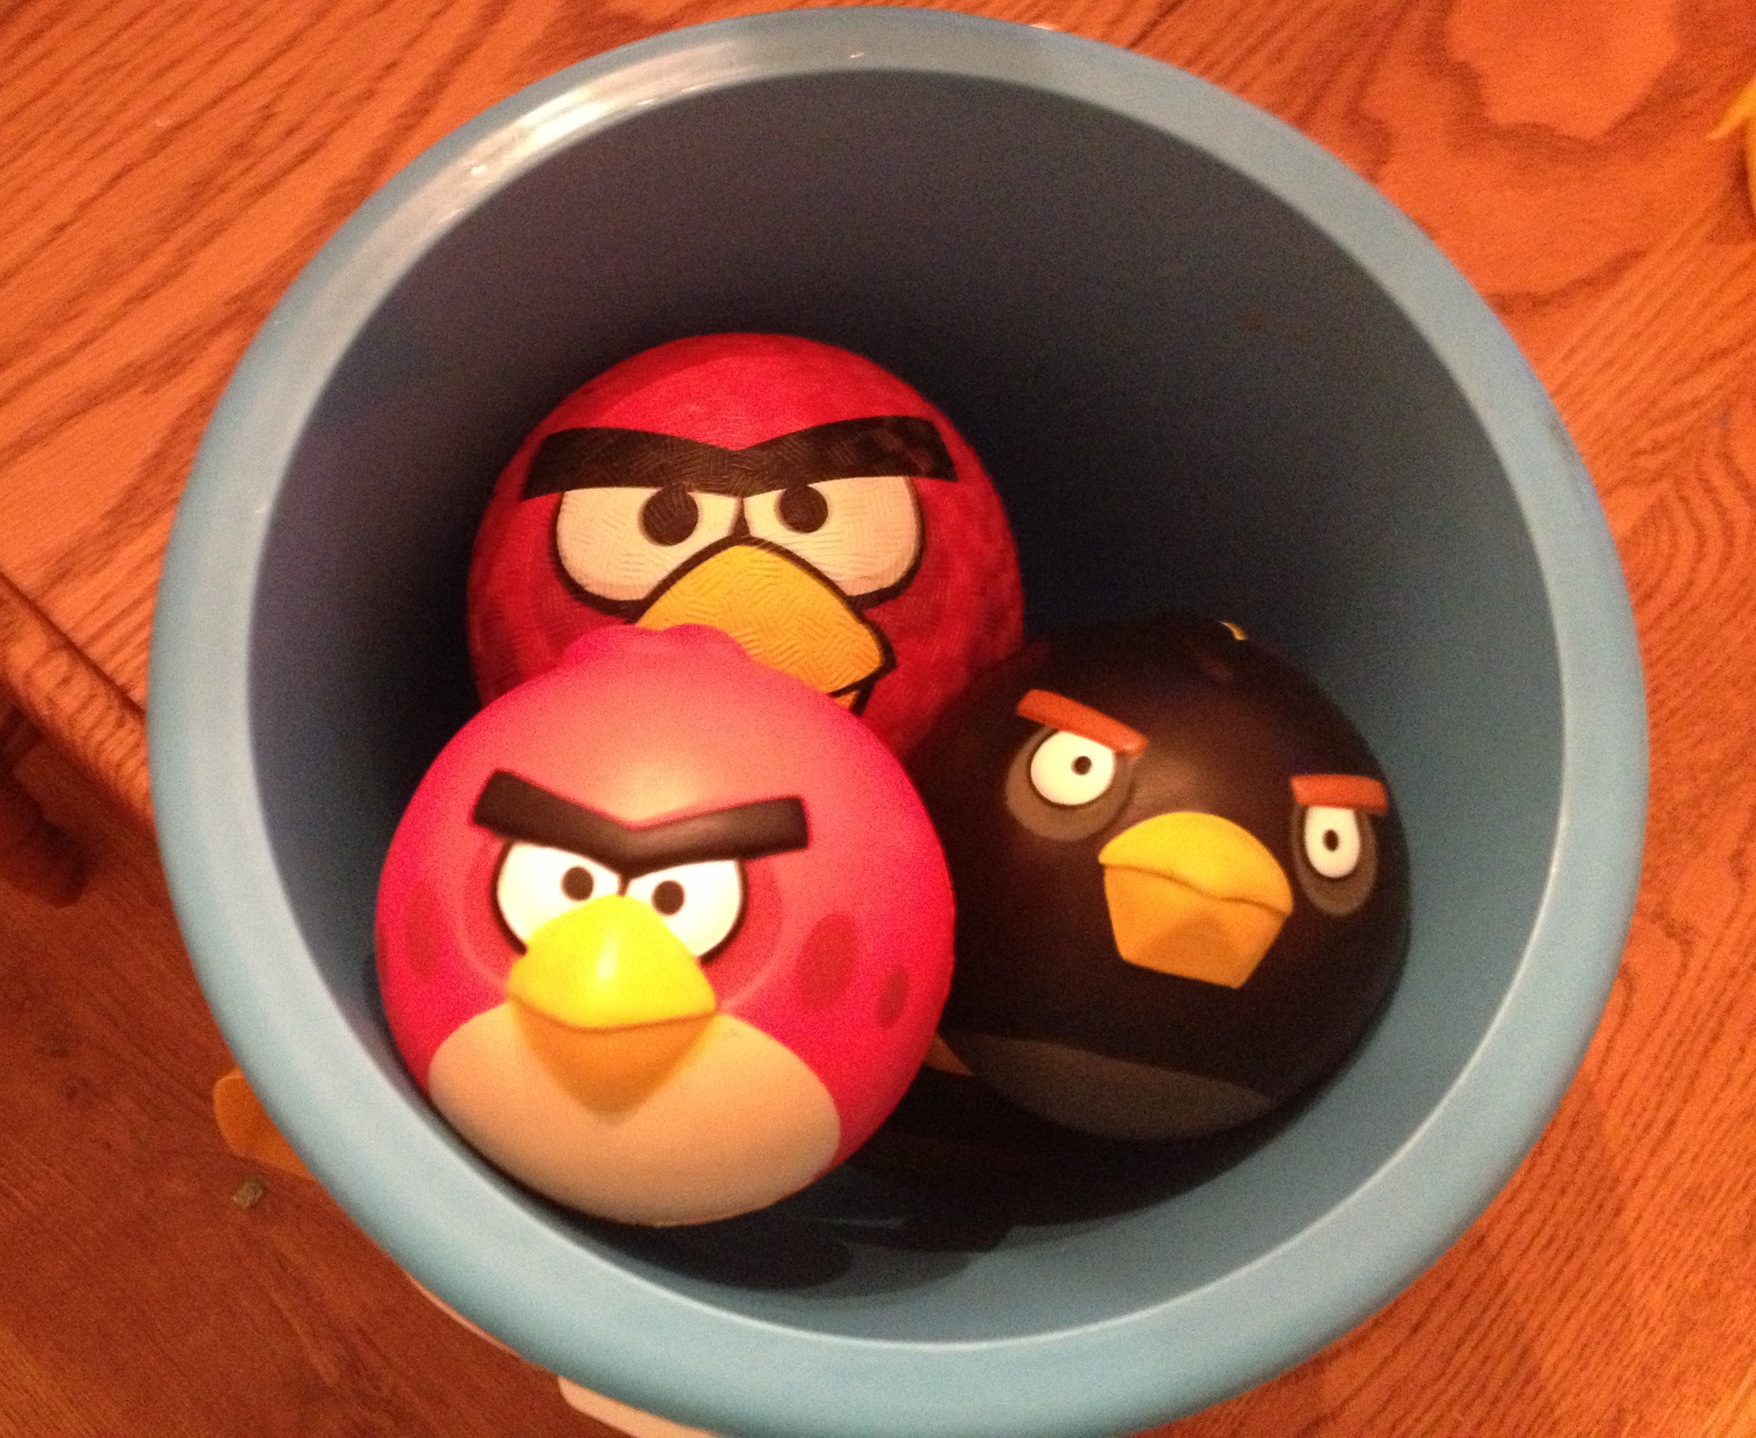 How to Make A Real Life Angry Birds Game! –